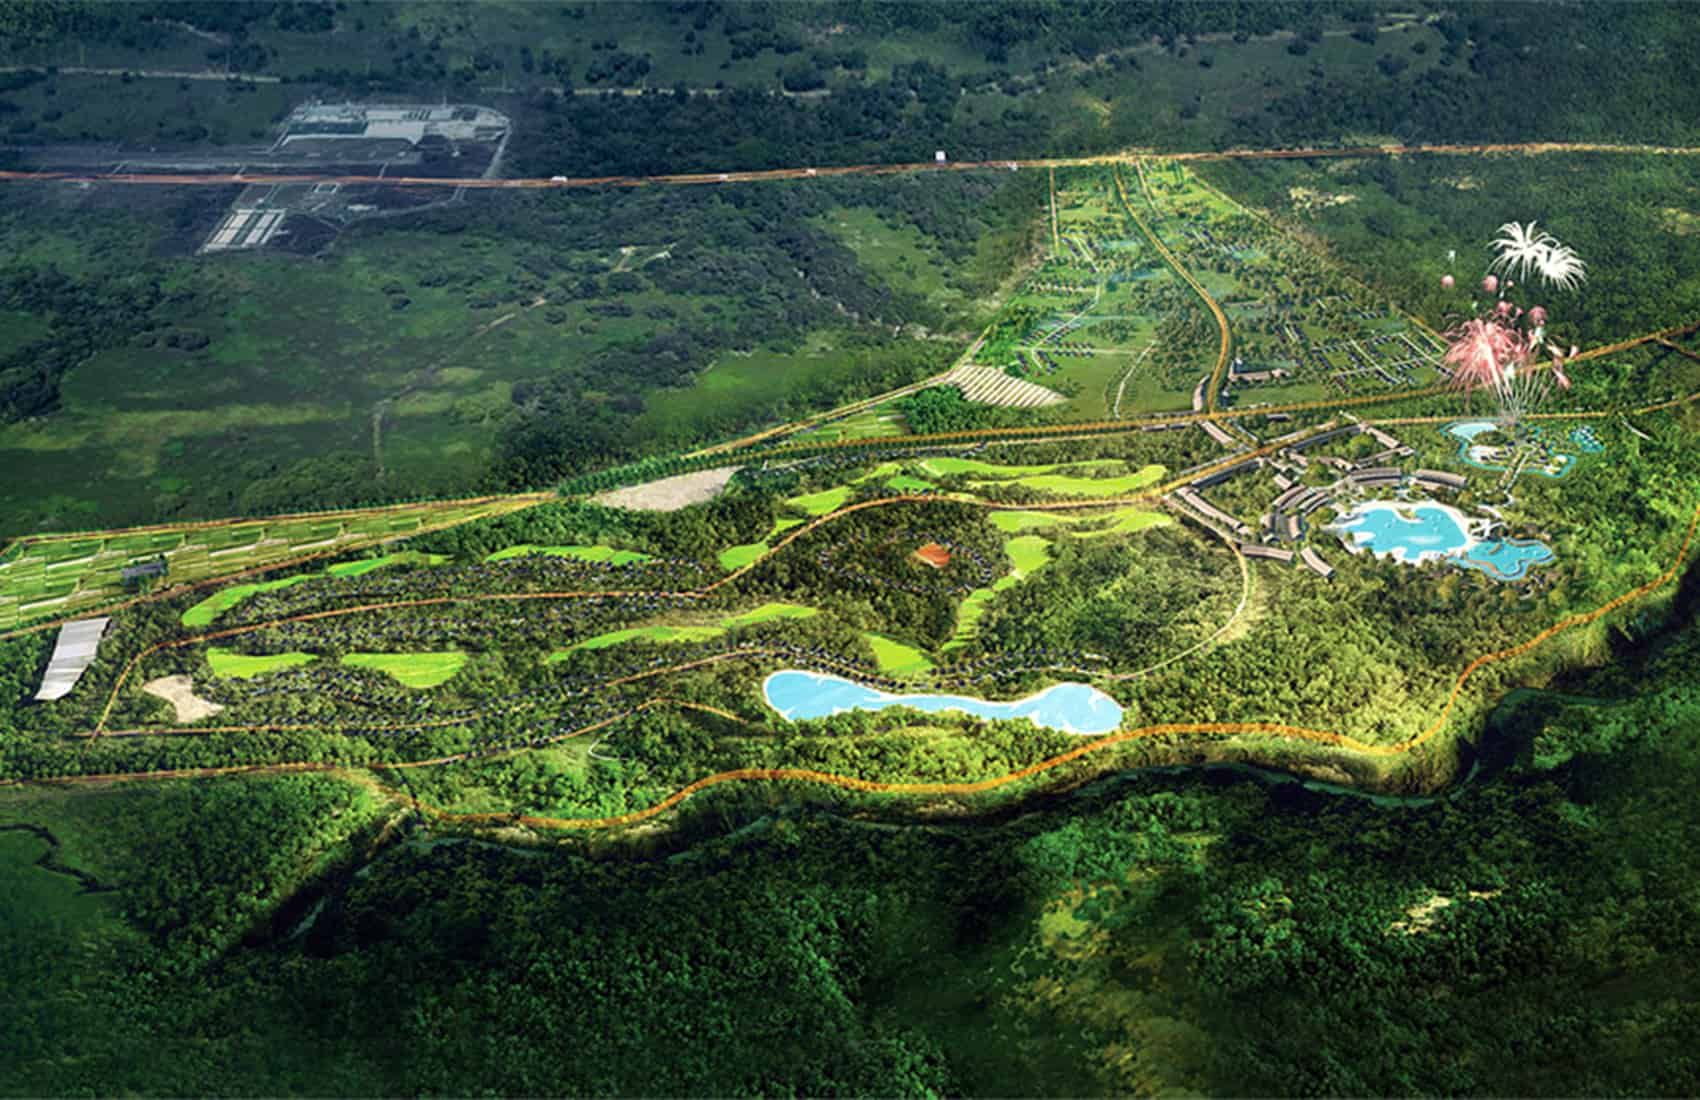 Discovery Costa Rica renders